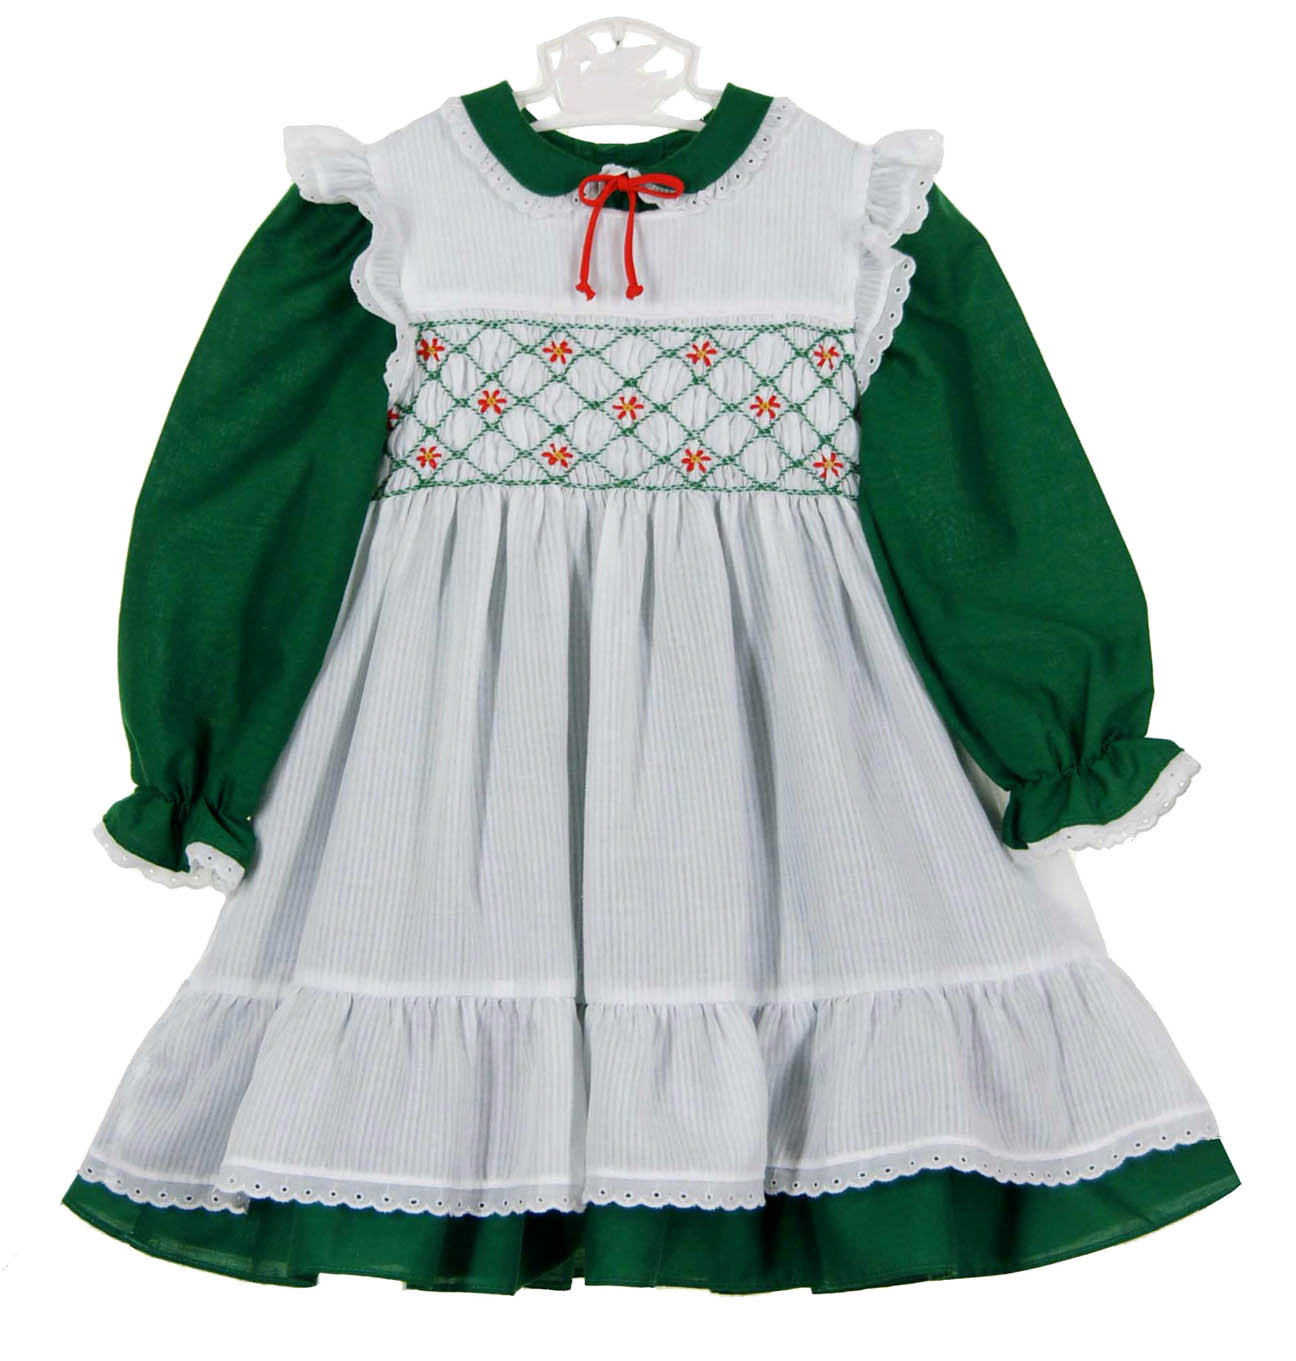 click to enlarge - Green Christmas Dress